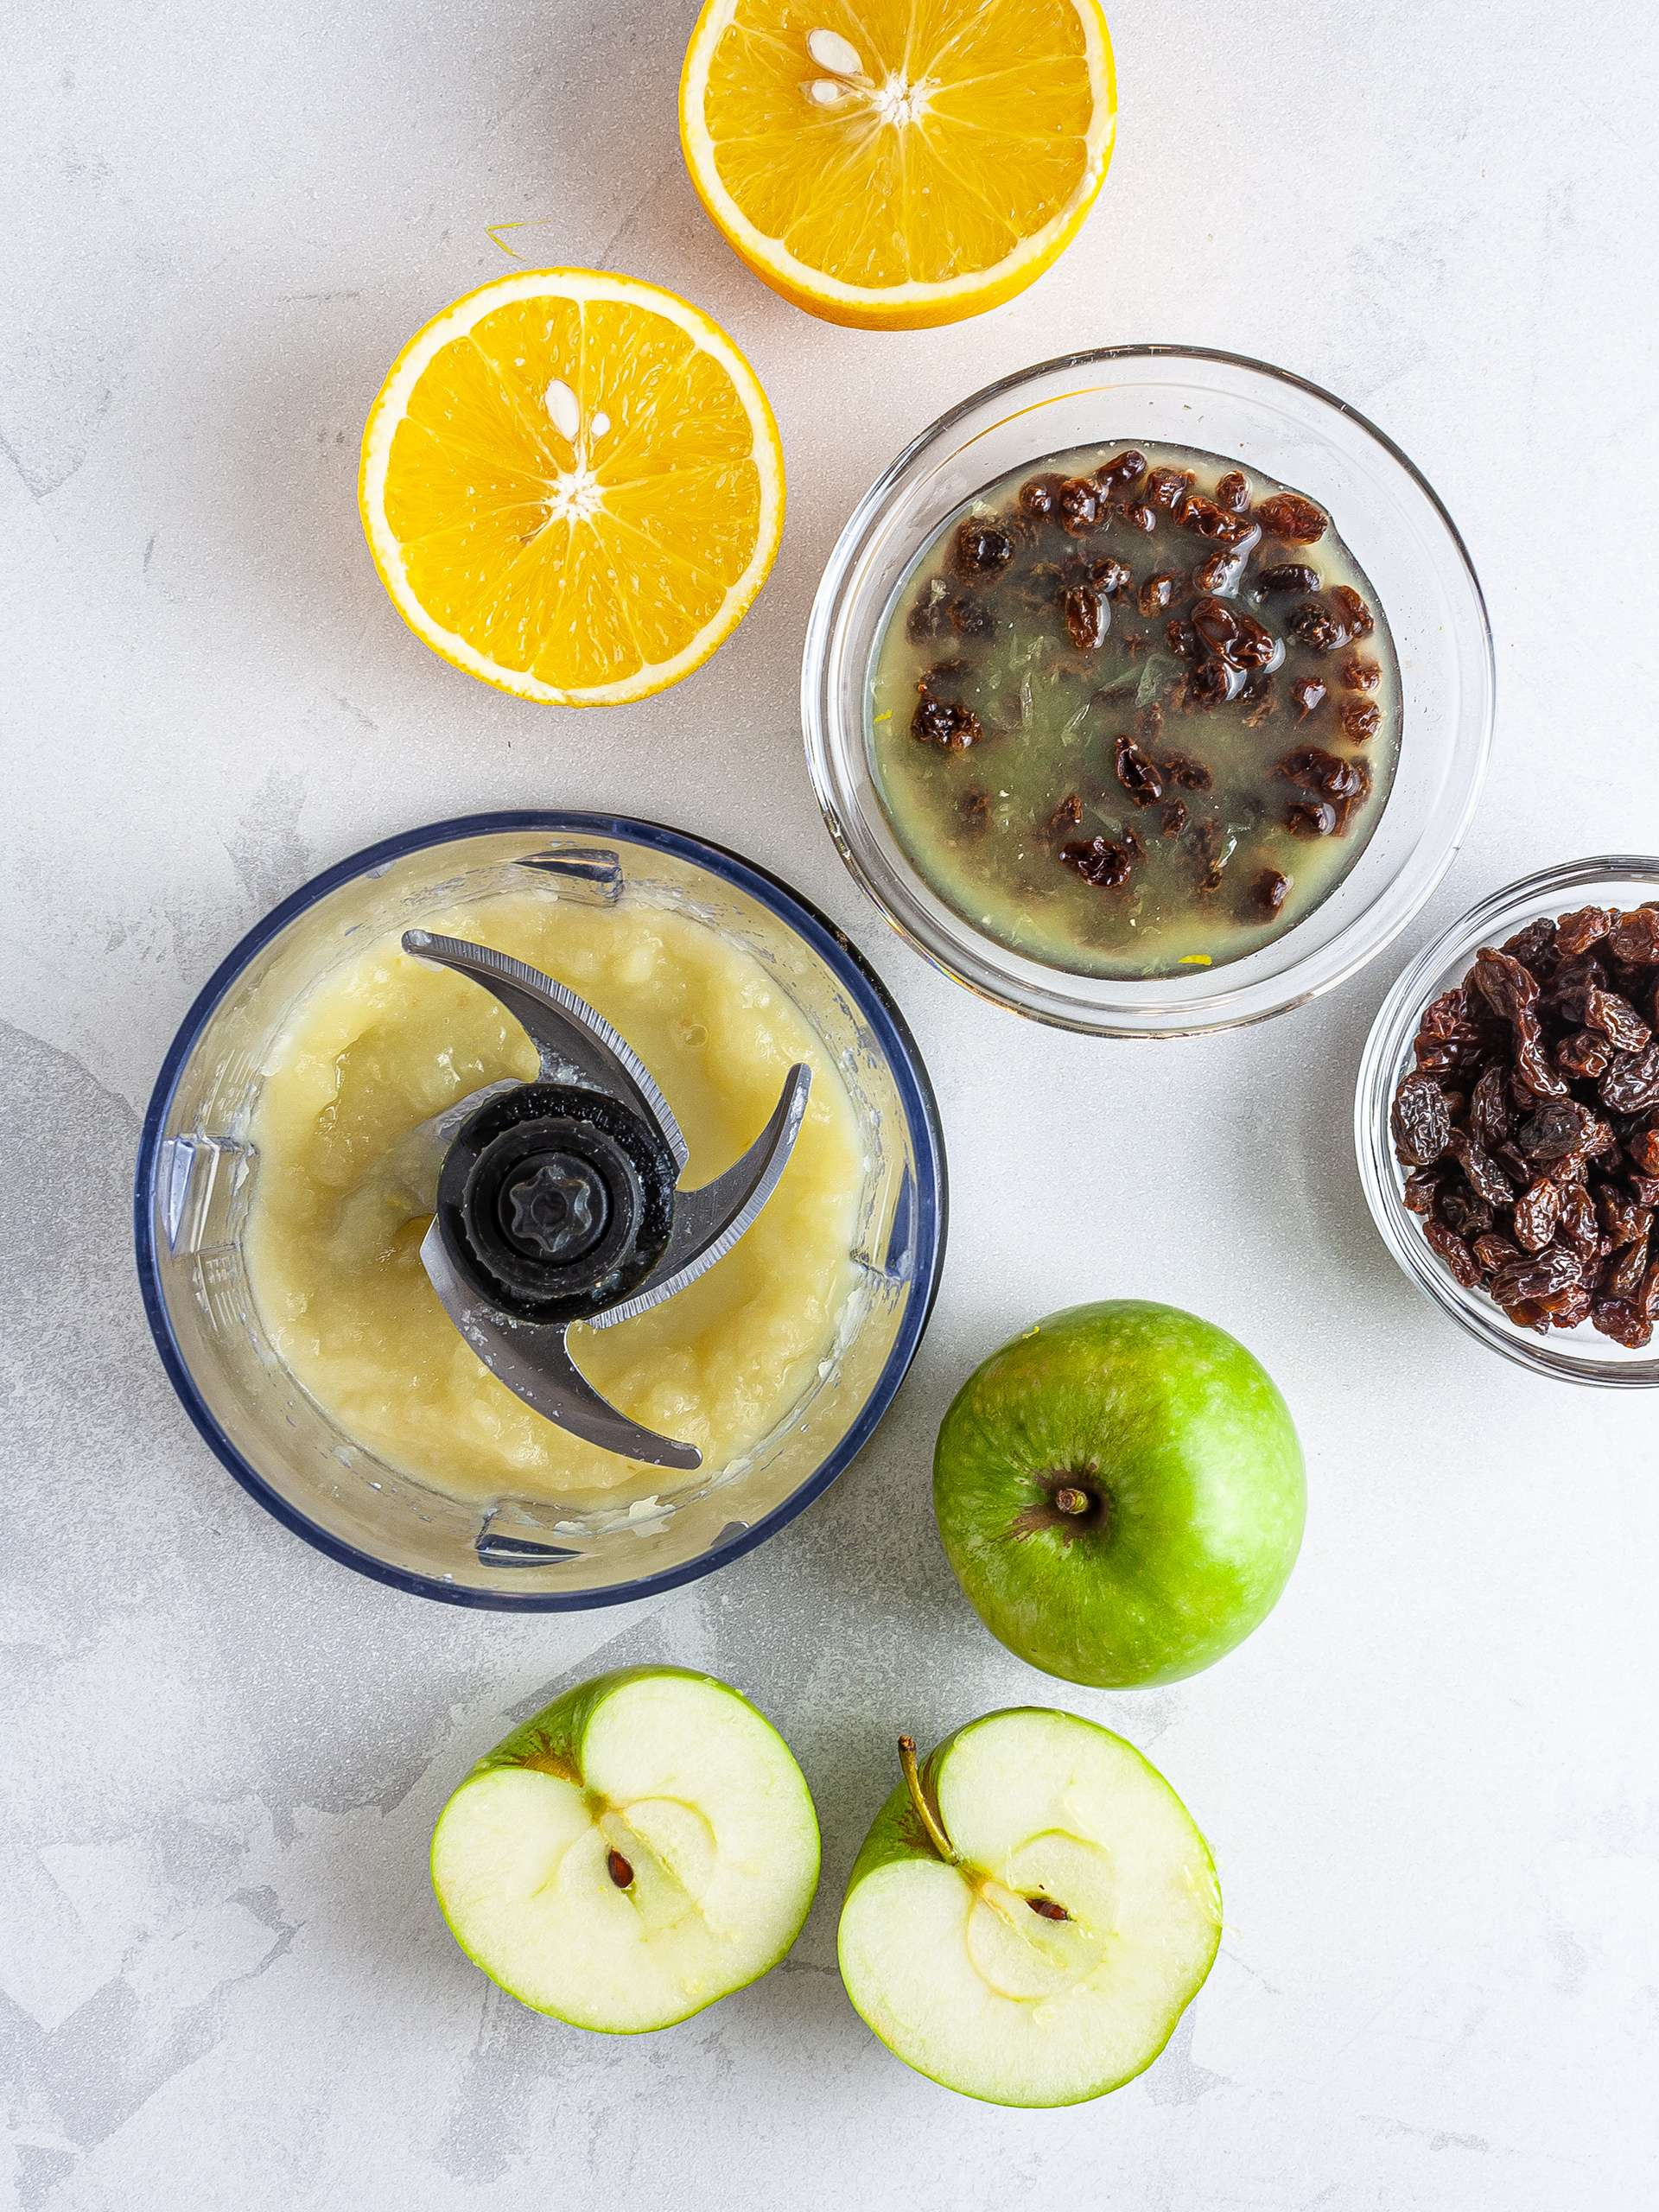 Applesauce and soaked raisins